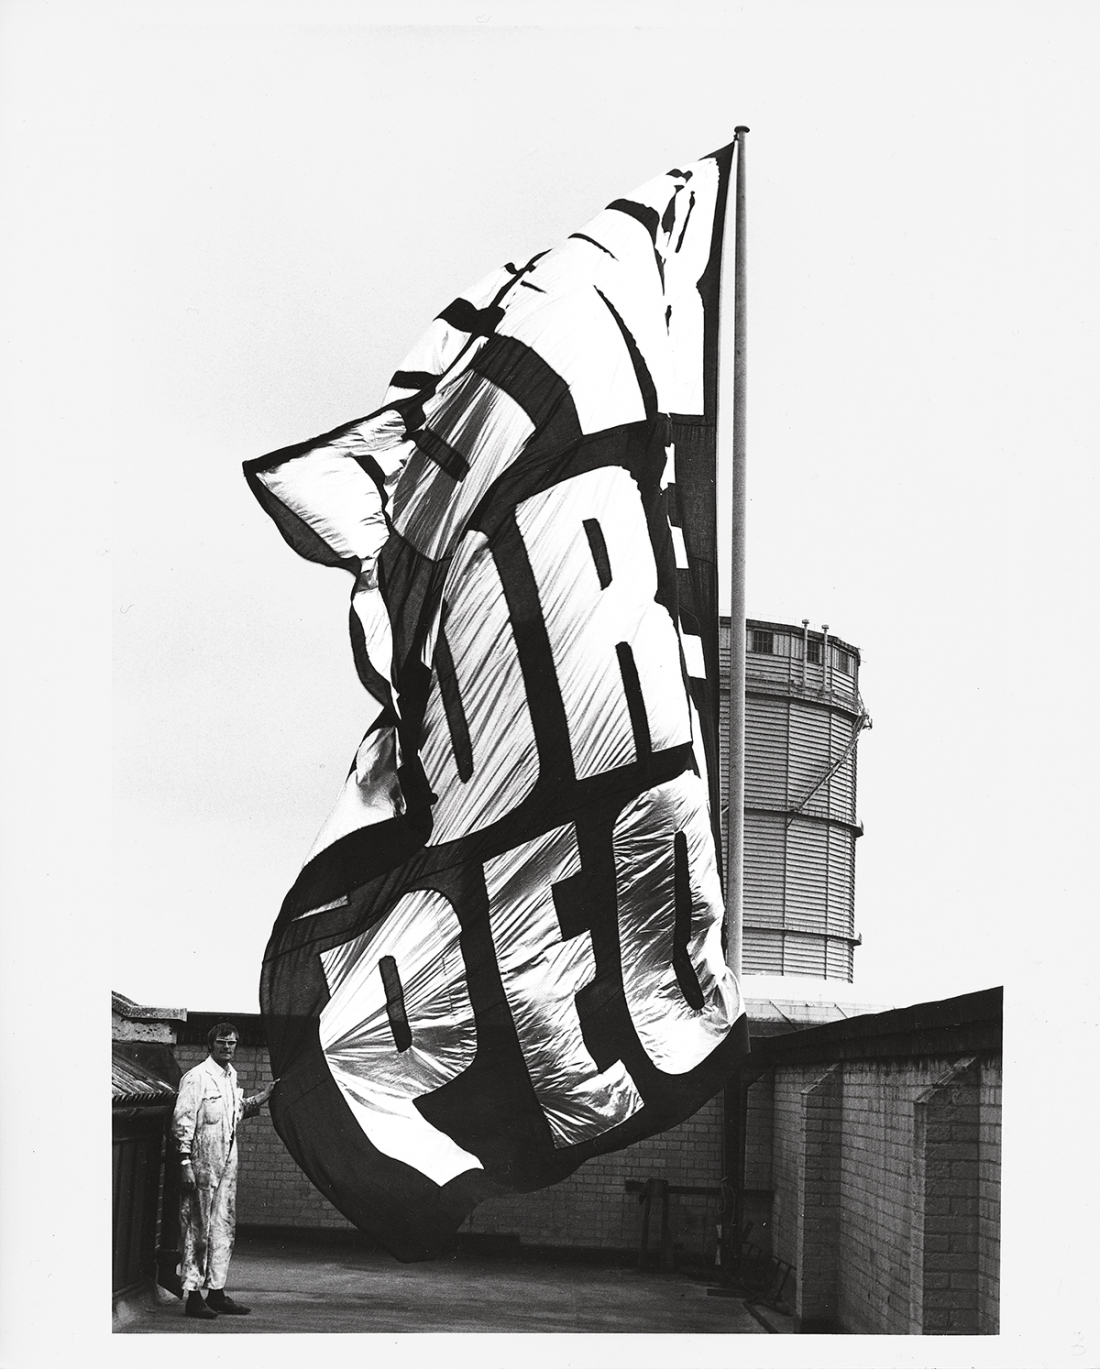 Rose Finn-Kelcey, Power for the People. Documentation Photograph #1, 1972